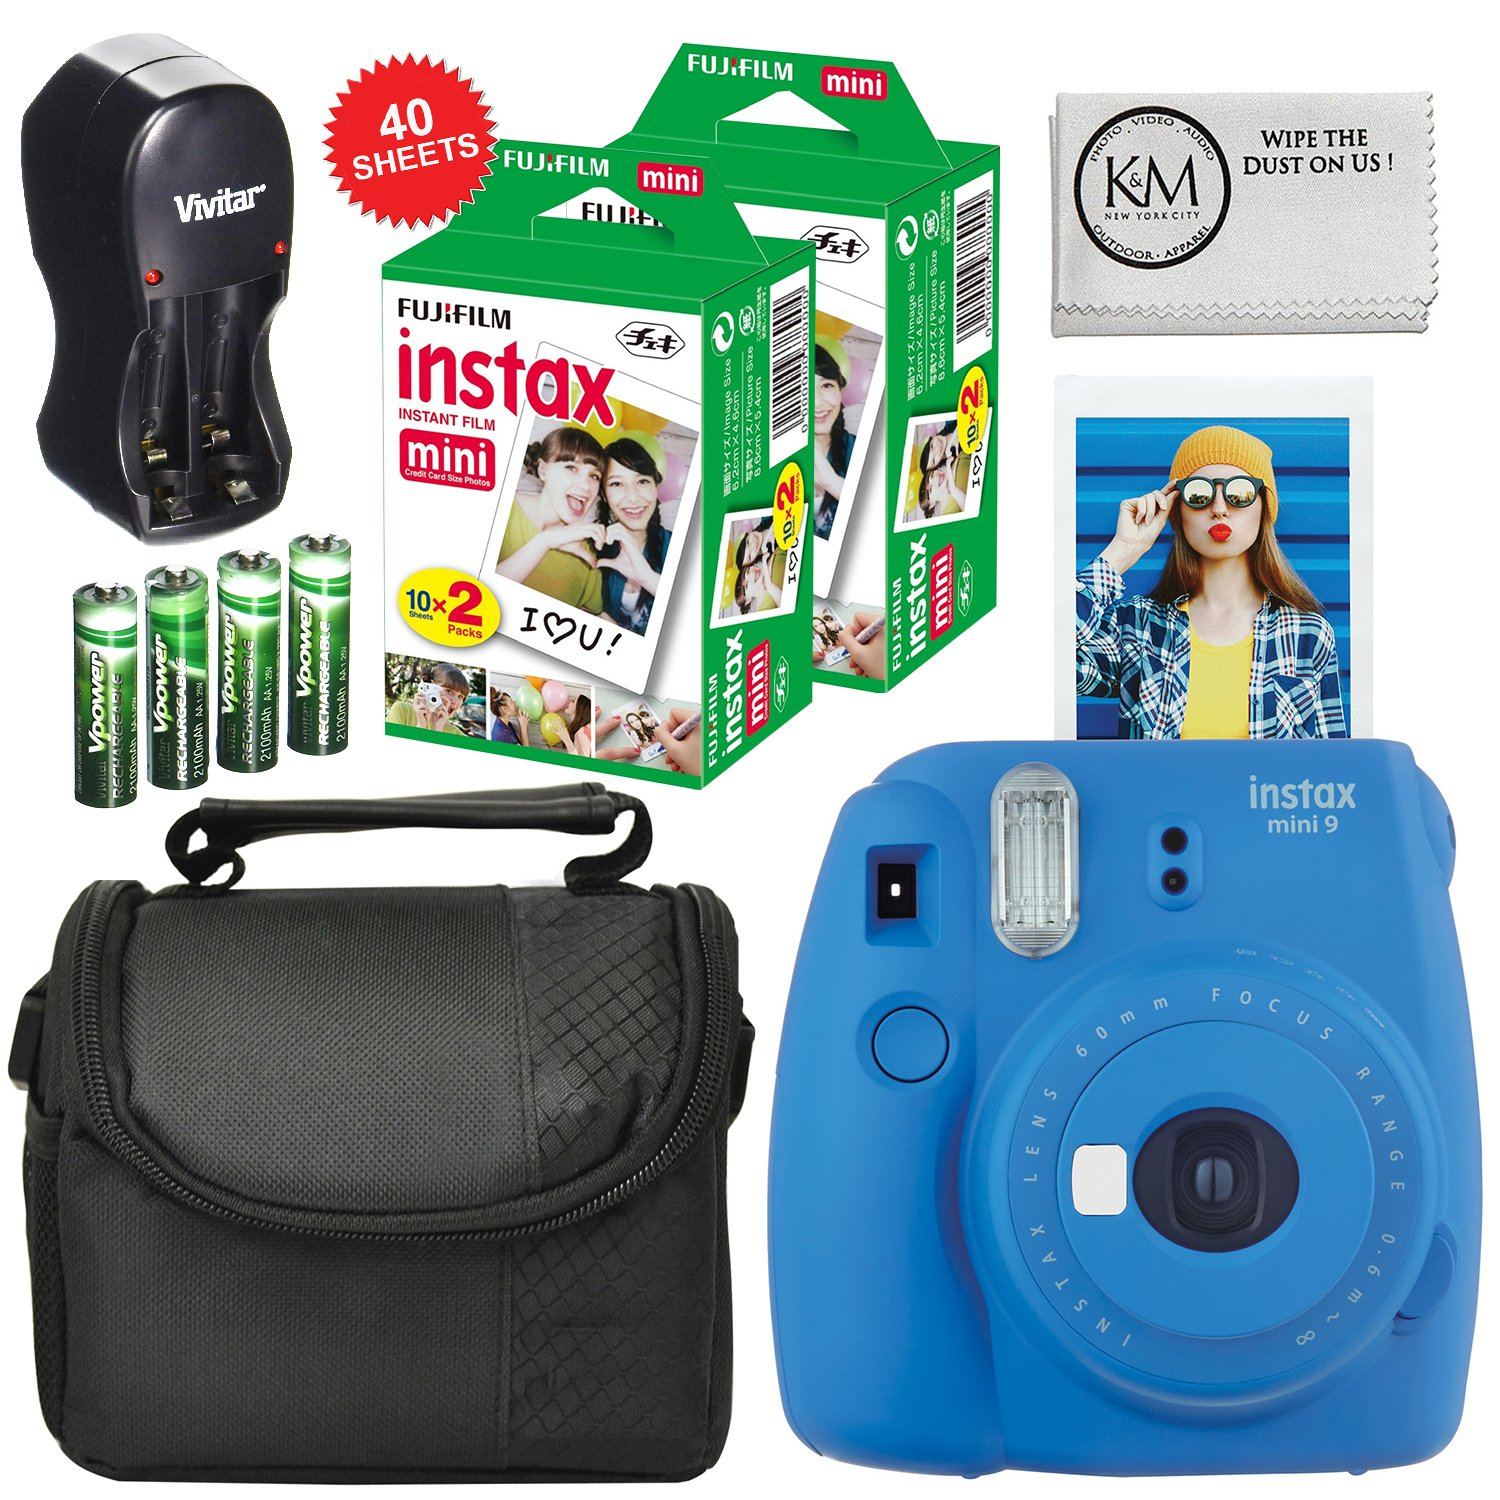 Fuji Instax Mini 9 Camera Cobalt Blue + Carry Case + Rechargeable AA Batteries & Charger + Instax Mini Film (40 Sheets) by K&M